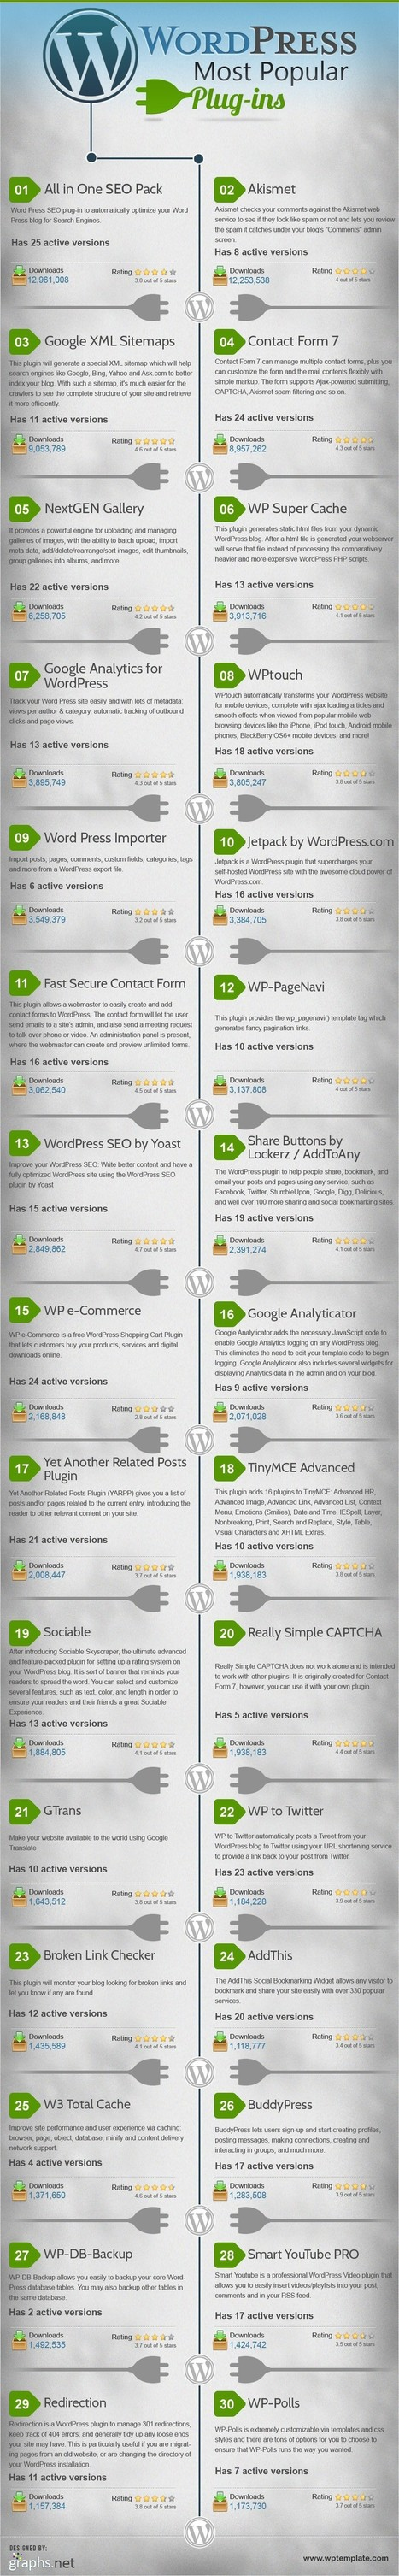 Top 30 Best & Most Popular WordPress Plugins - Infographics | Viral Classified News | Scoop.it